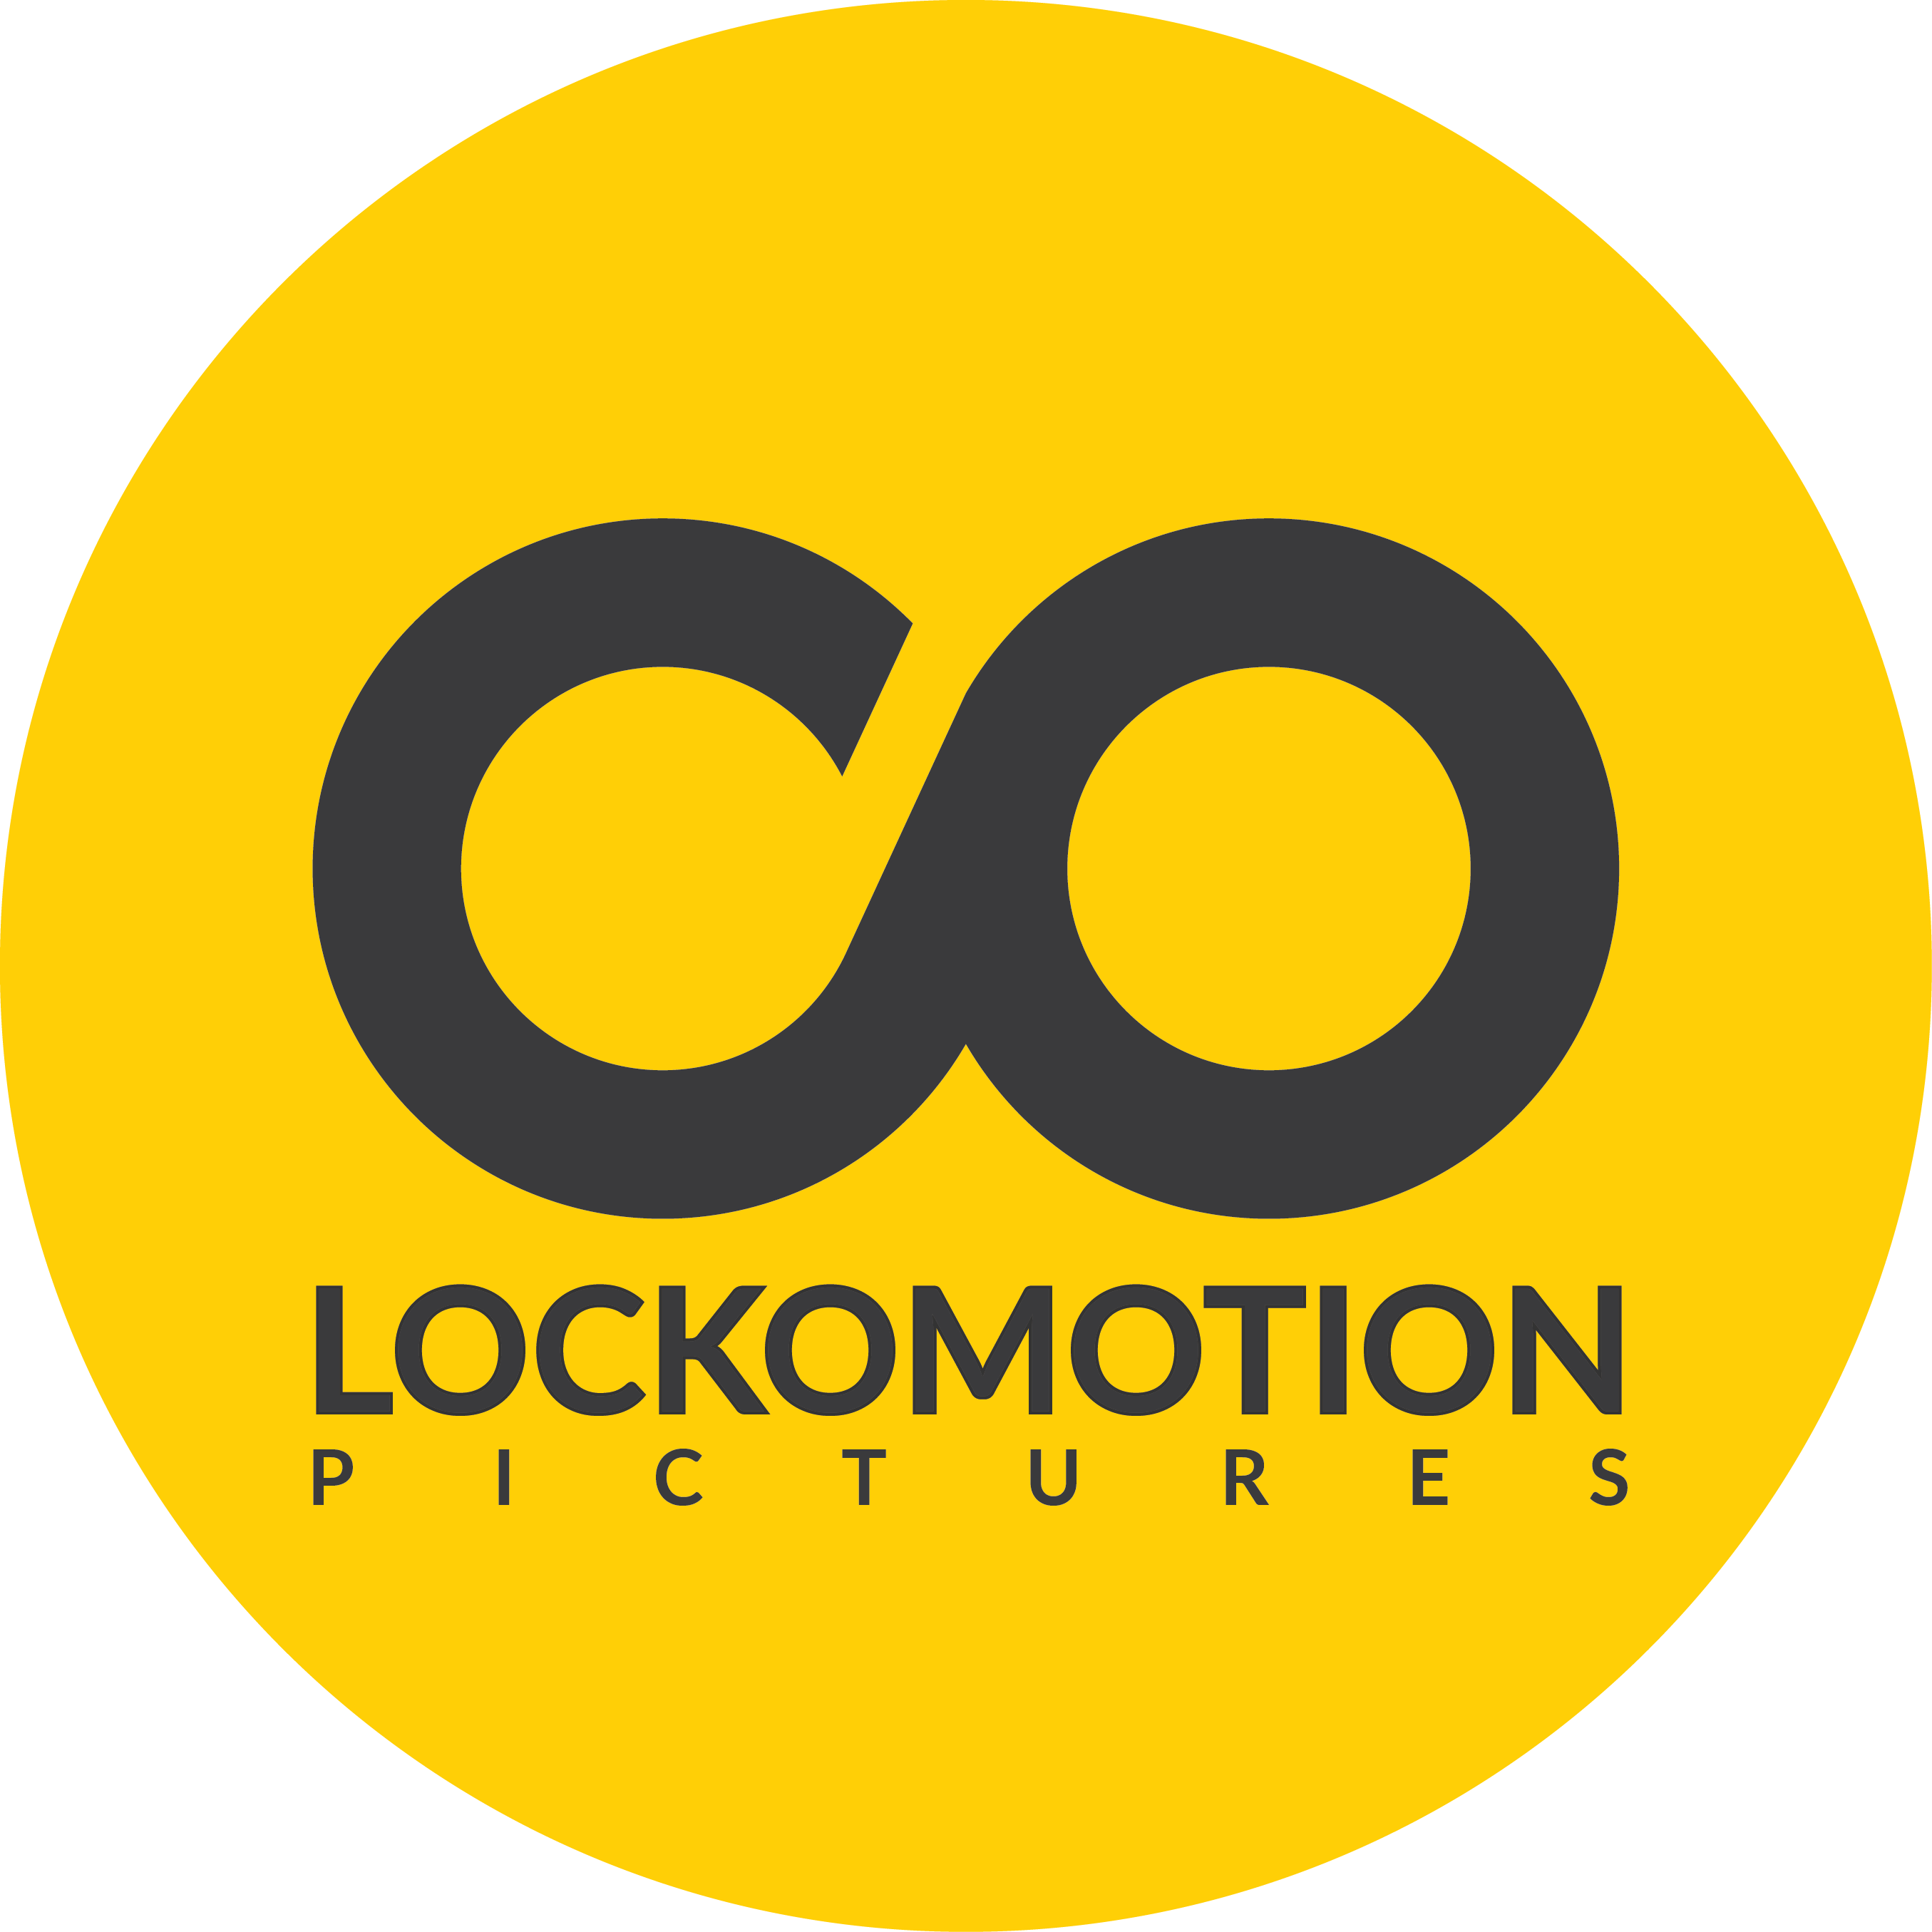 LOCKOMOTION